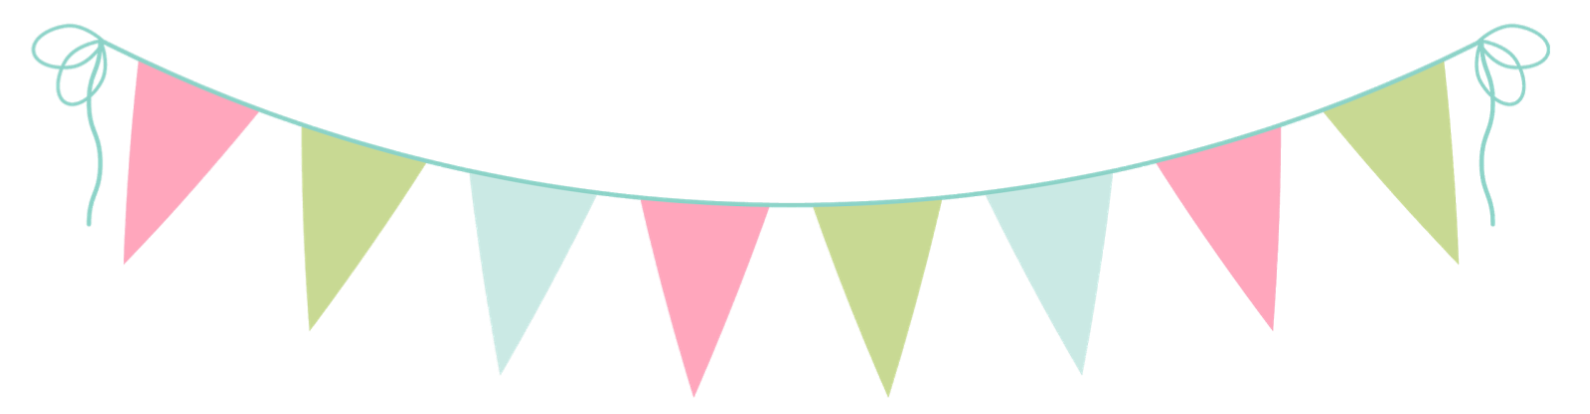 Pennant clipart. Banner free download best